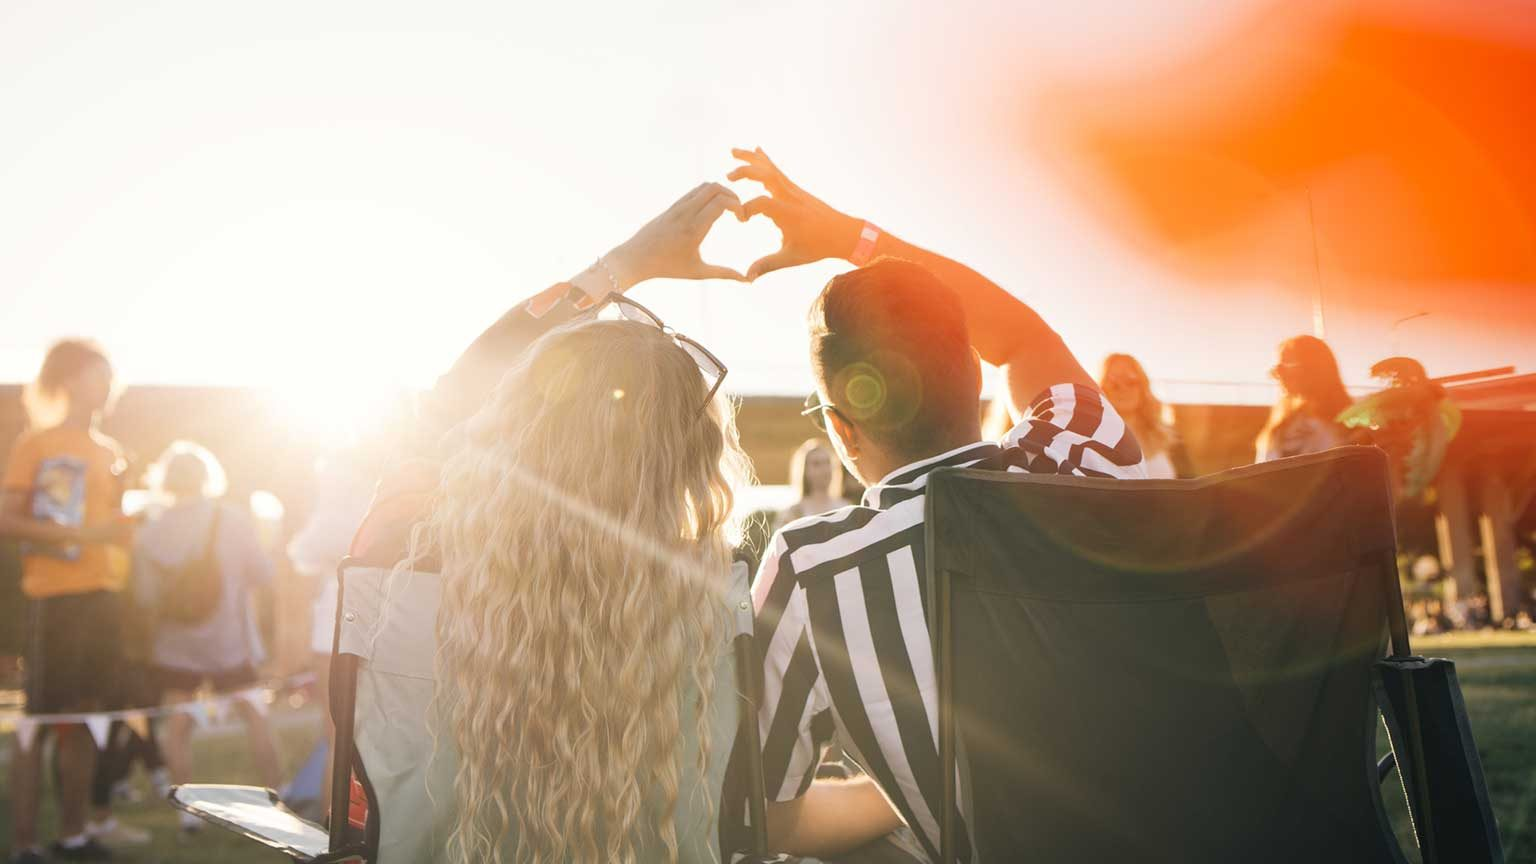 Couple at a festival holding hands in a love heart.